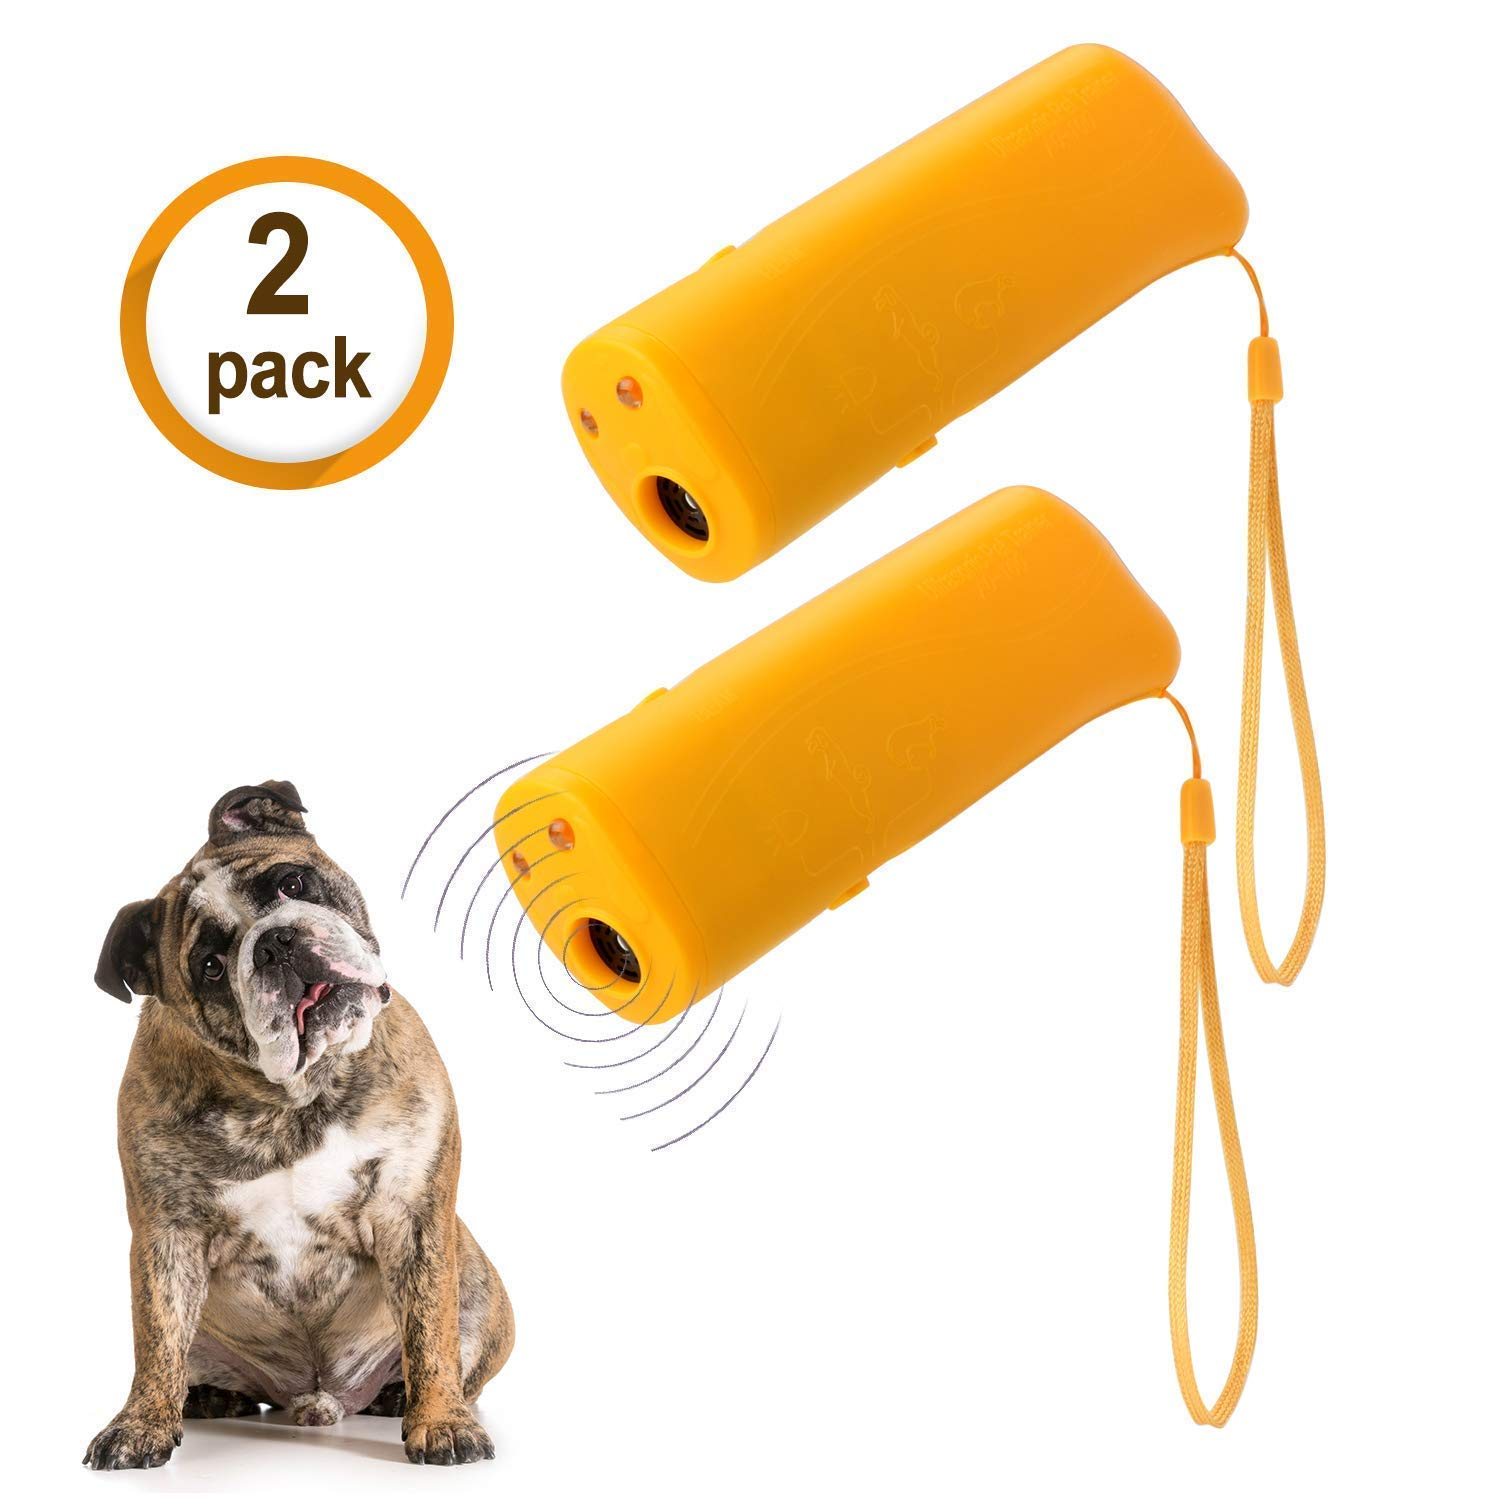 Belldan Anti Barking Device Dog Deterrent Stop Training Tool Electronic Repellent Circuit Ultrasonic 2 Is Harmless For Dogs